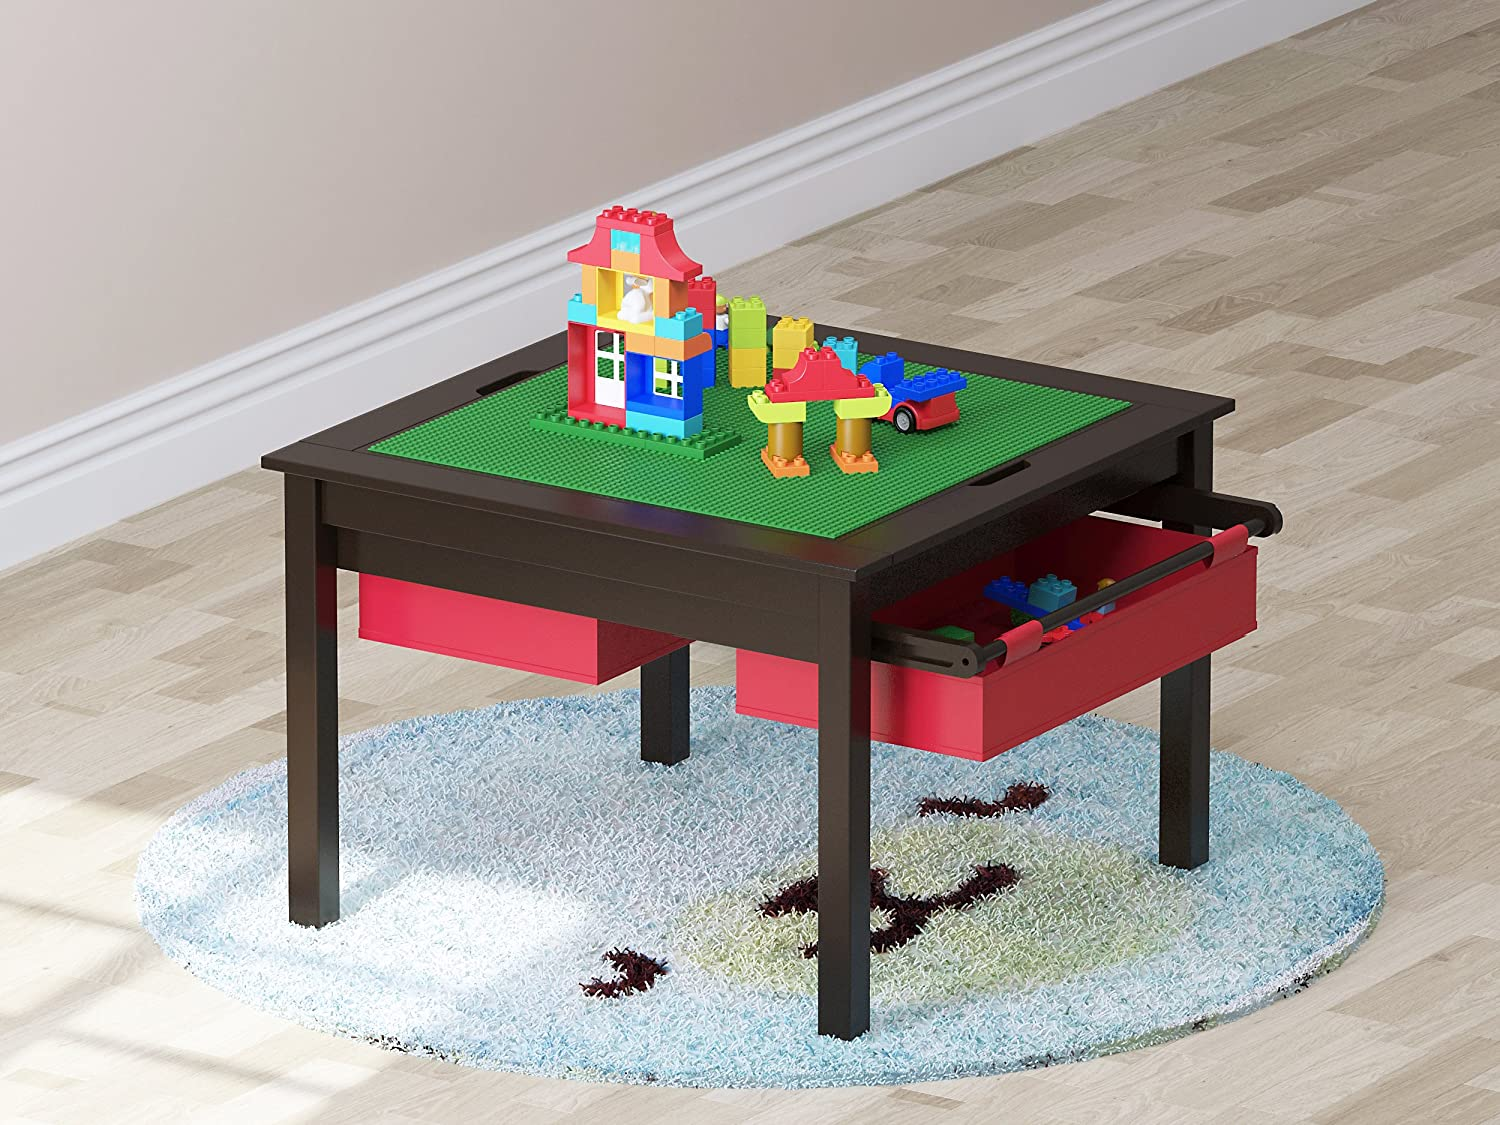 Espresso UTEX 2 in 1 Kids Construction Play Table with Storage Drawers and Built in Plate